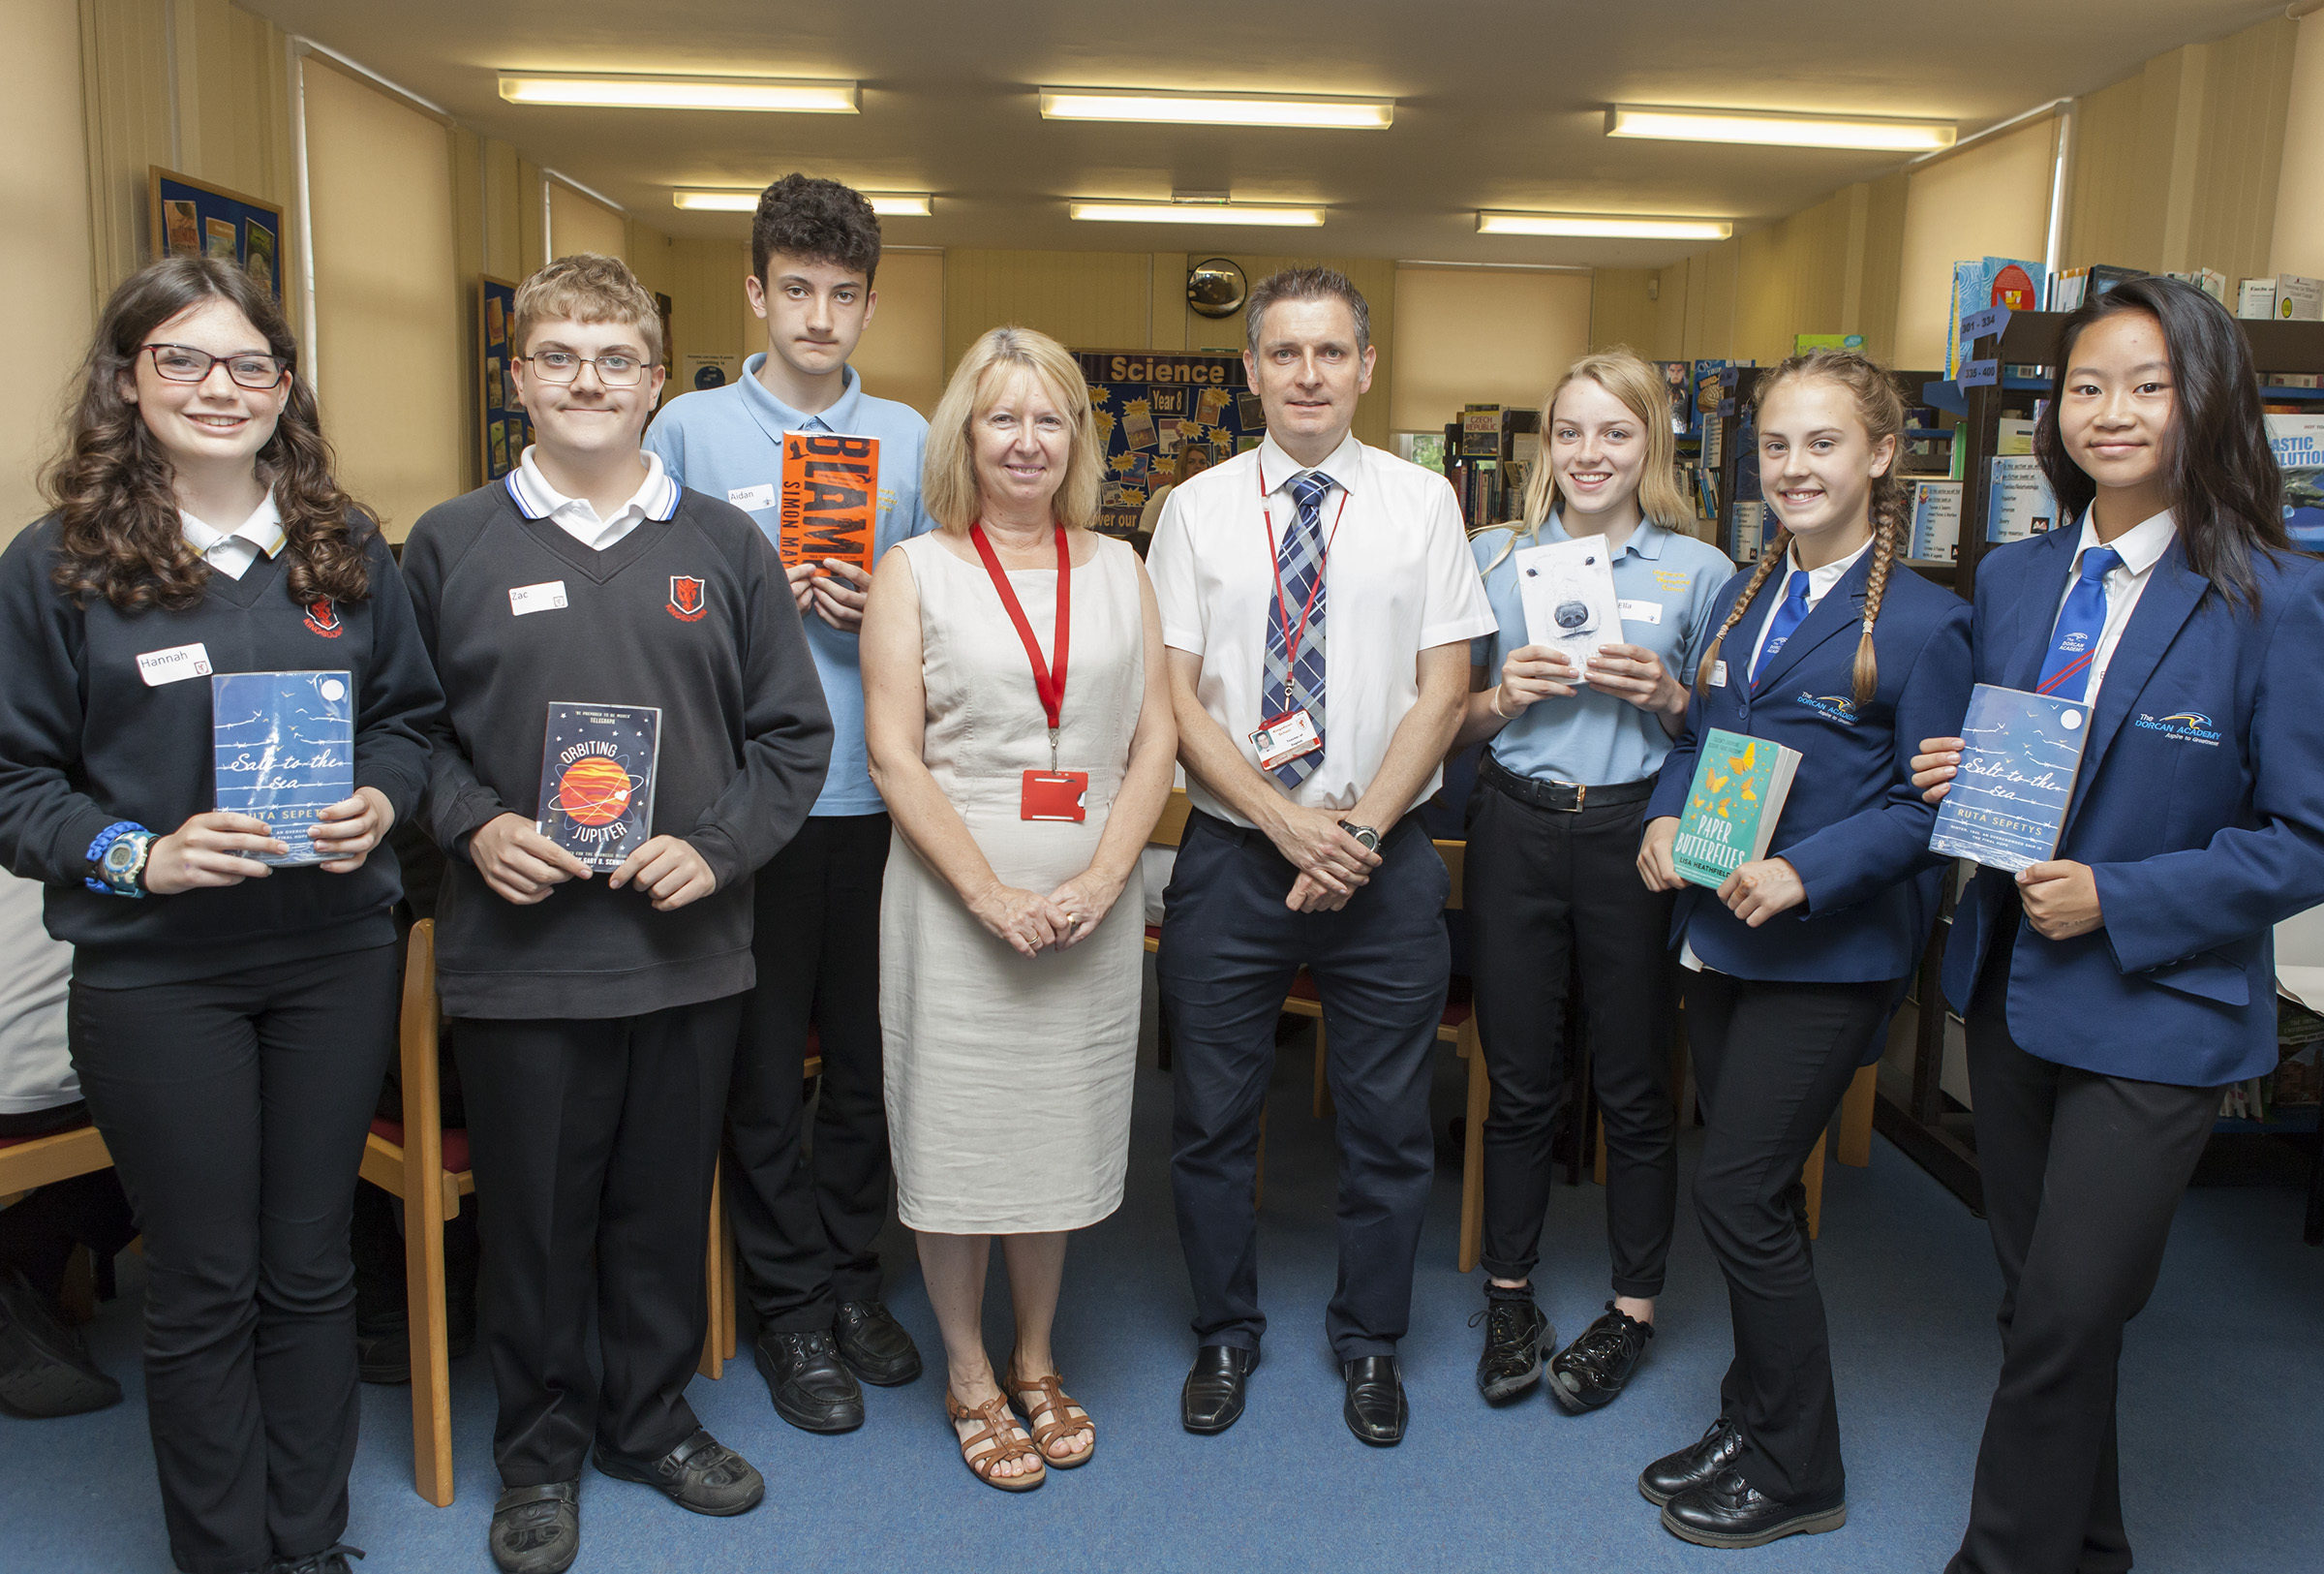 Riveting Readathon at Kingsdown School.Pictured: Hannah Cooper, Zac Fairbrother (Kingsdown), Aidan Tucker (Highworth Warneford), Lin Curtis (Learning Resource Centre Manager), Robin Cook (Teacher of English), Ella Claxton-Fry (Highworth Warneford), Charlo